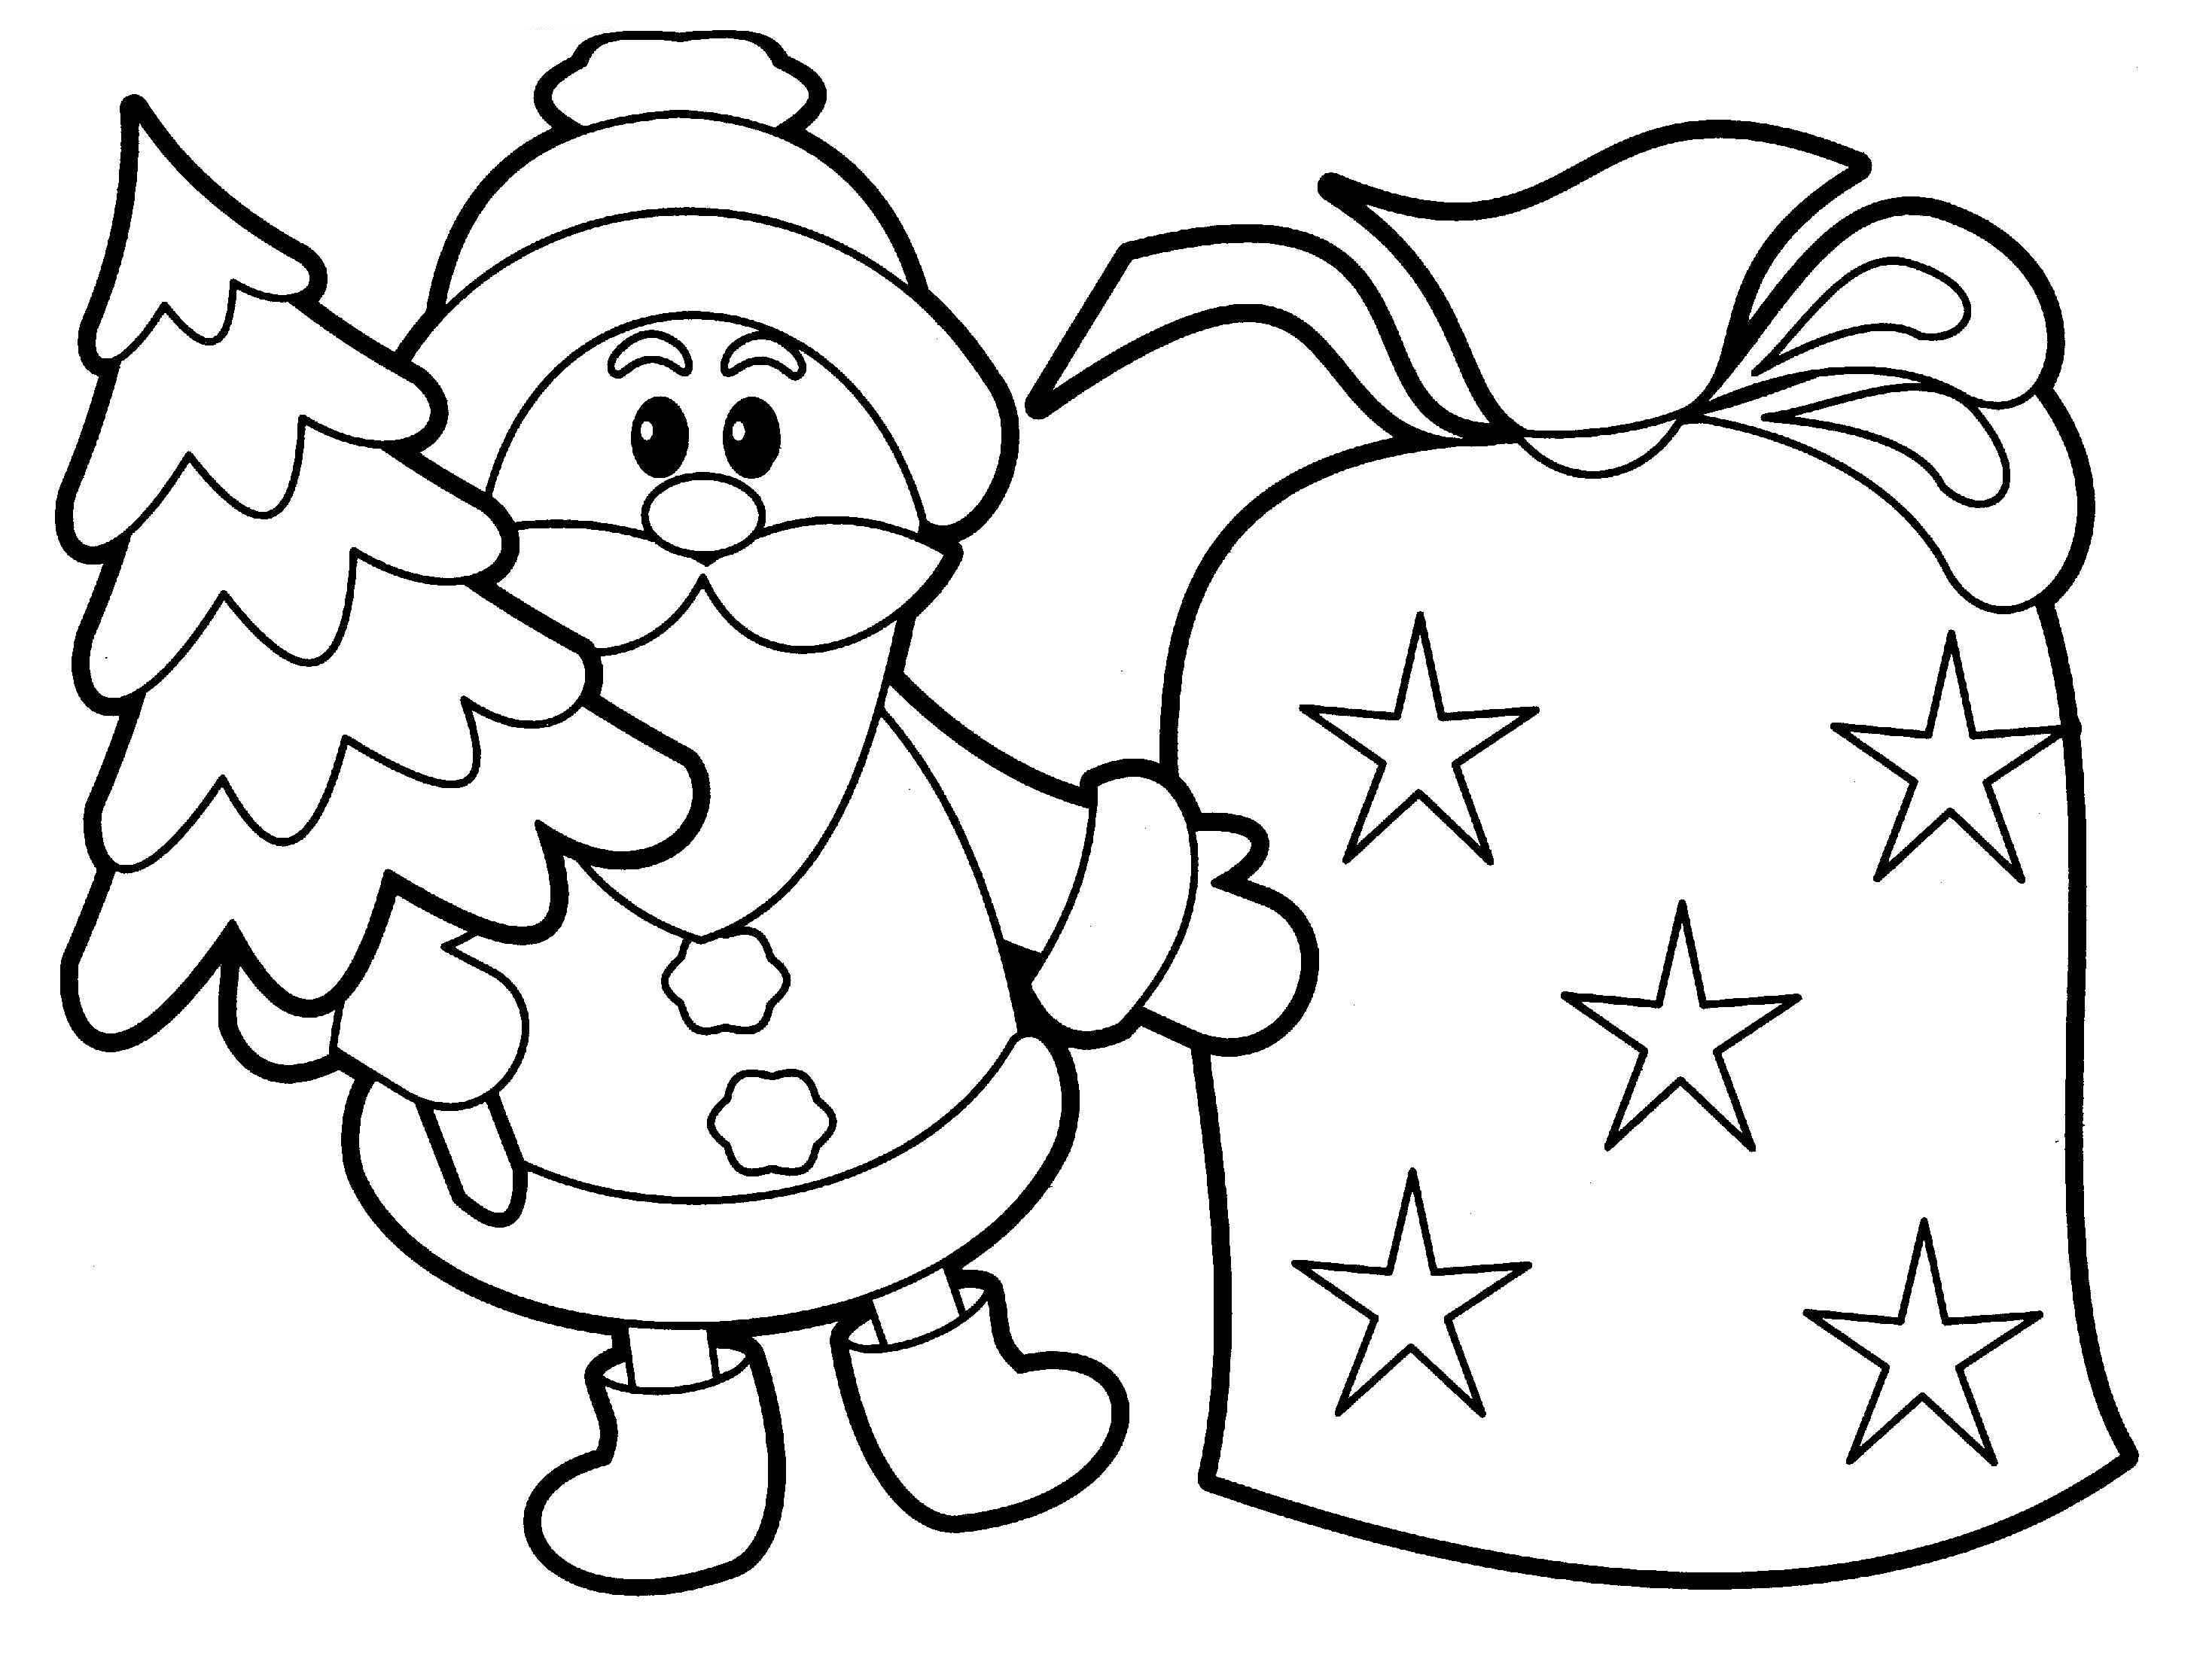 Christmas coloring activities printable - Merry Christmas Coloring Pages Printable Christmas Tree Coloring